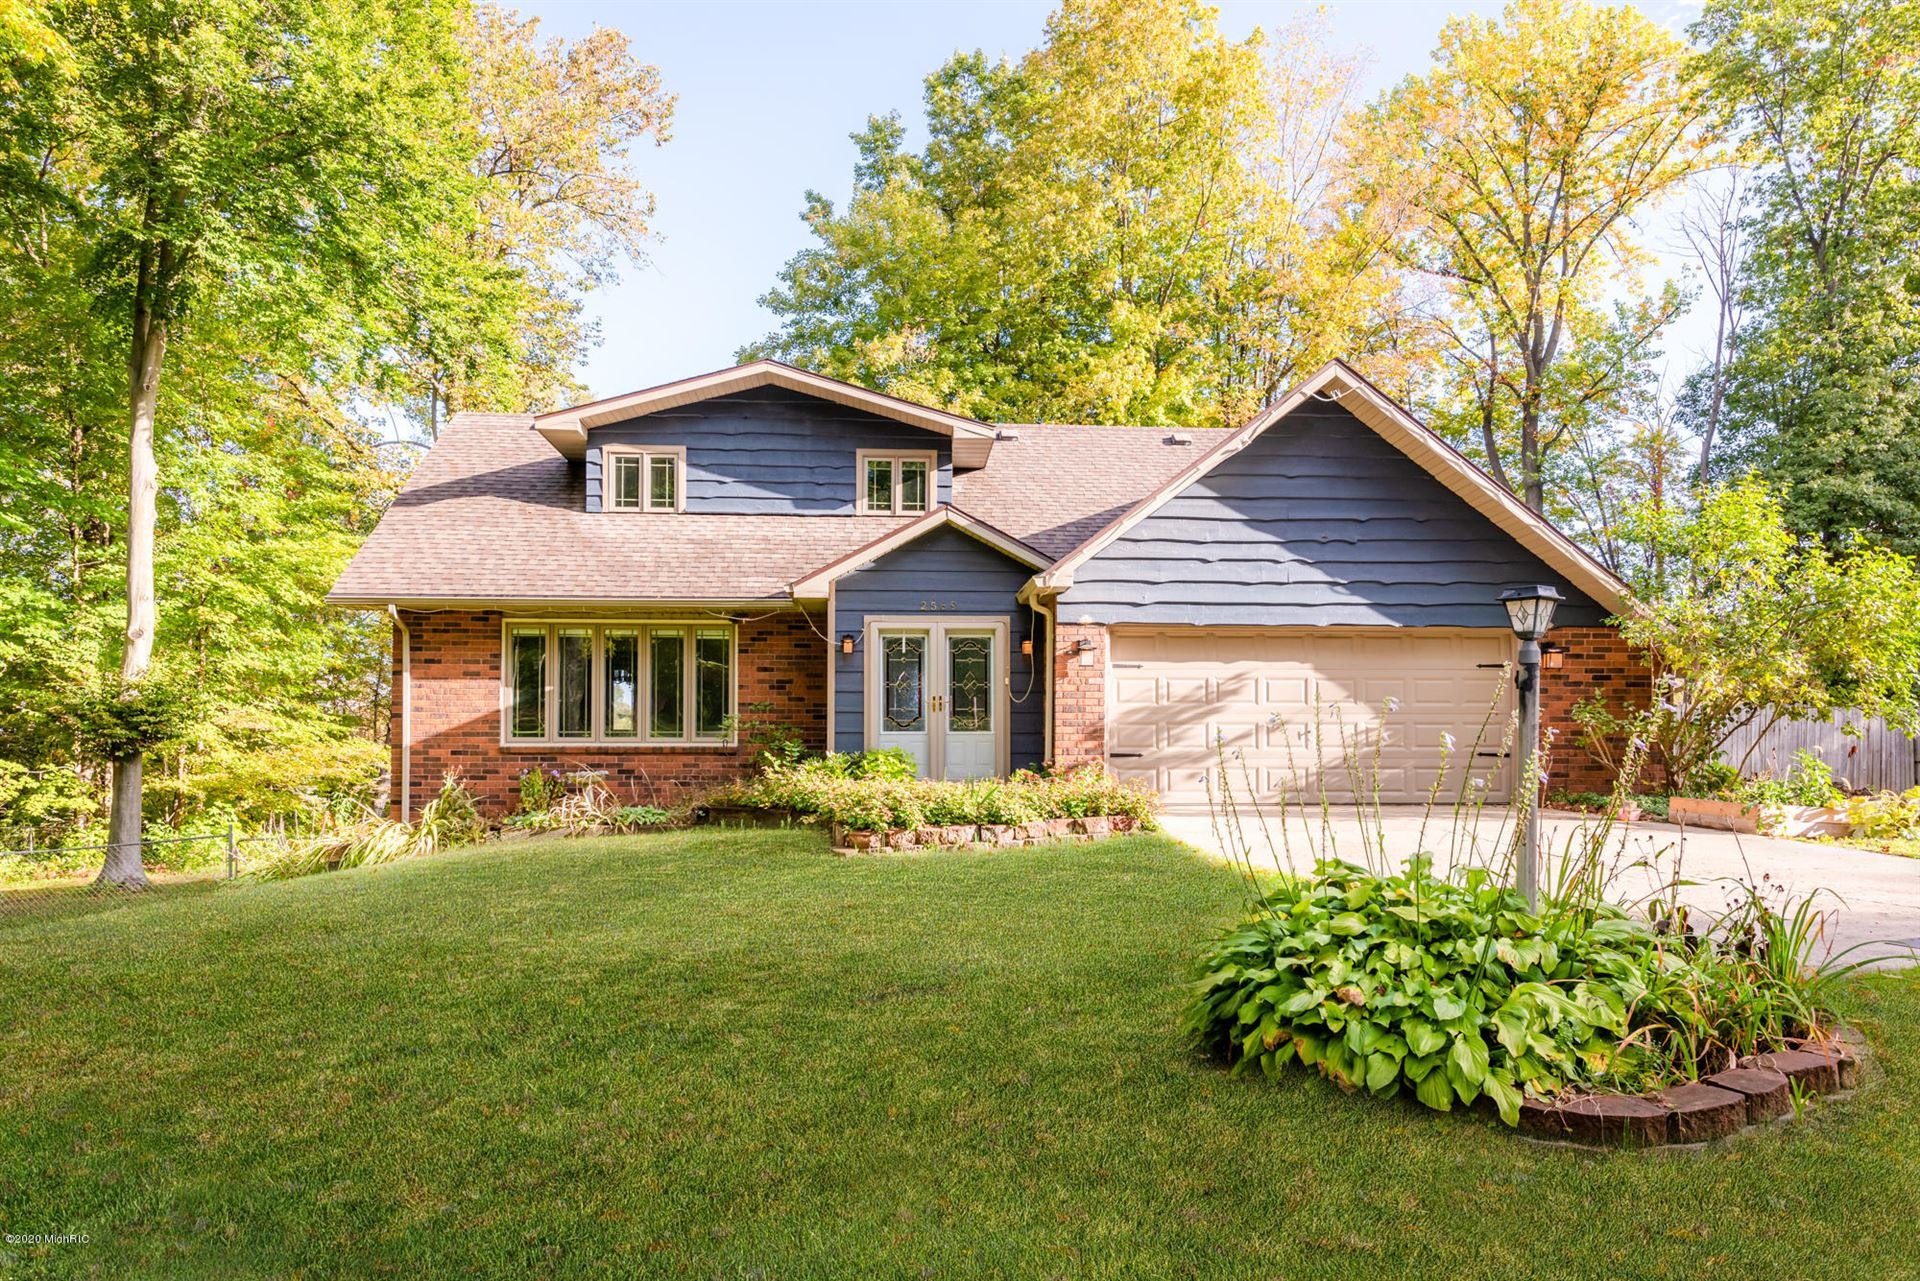 2569 Ridgewood Trail, Berrien Springs, MI 49103 - MLS#: 20047132